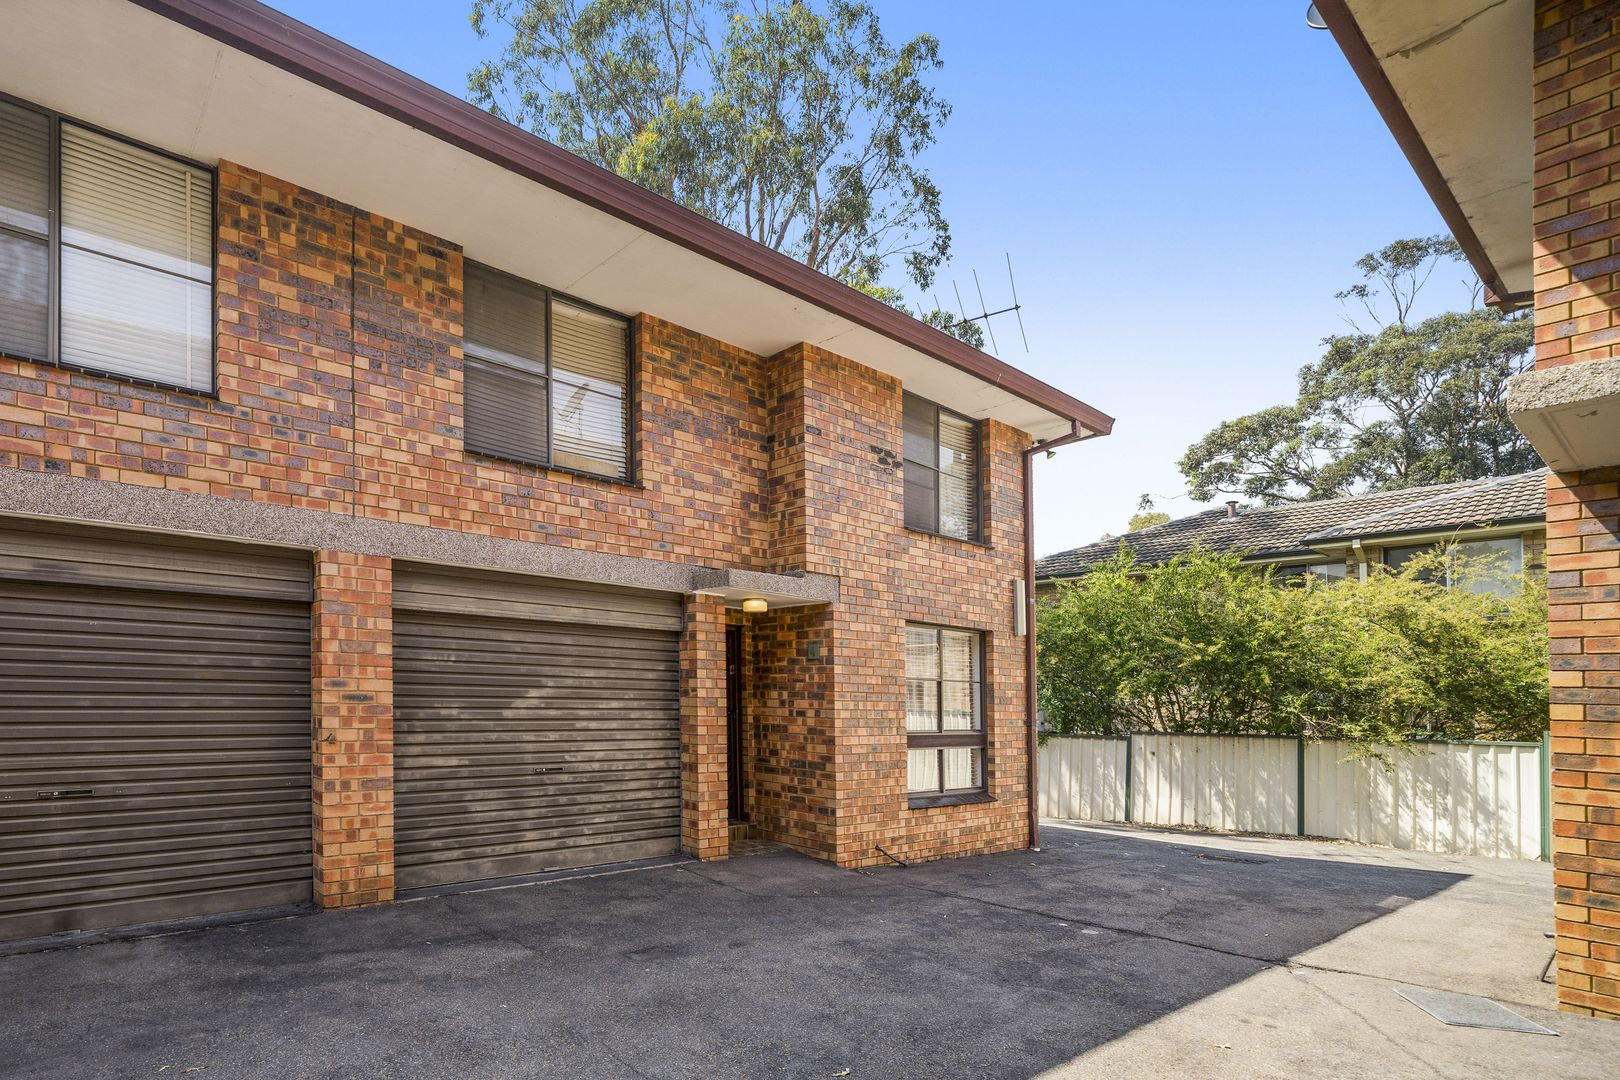 4/20-22 Todd Street, Merrylands West NSW 2160, Image 0